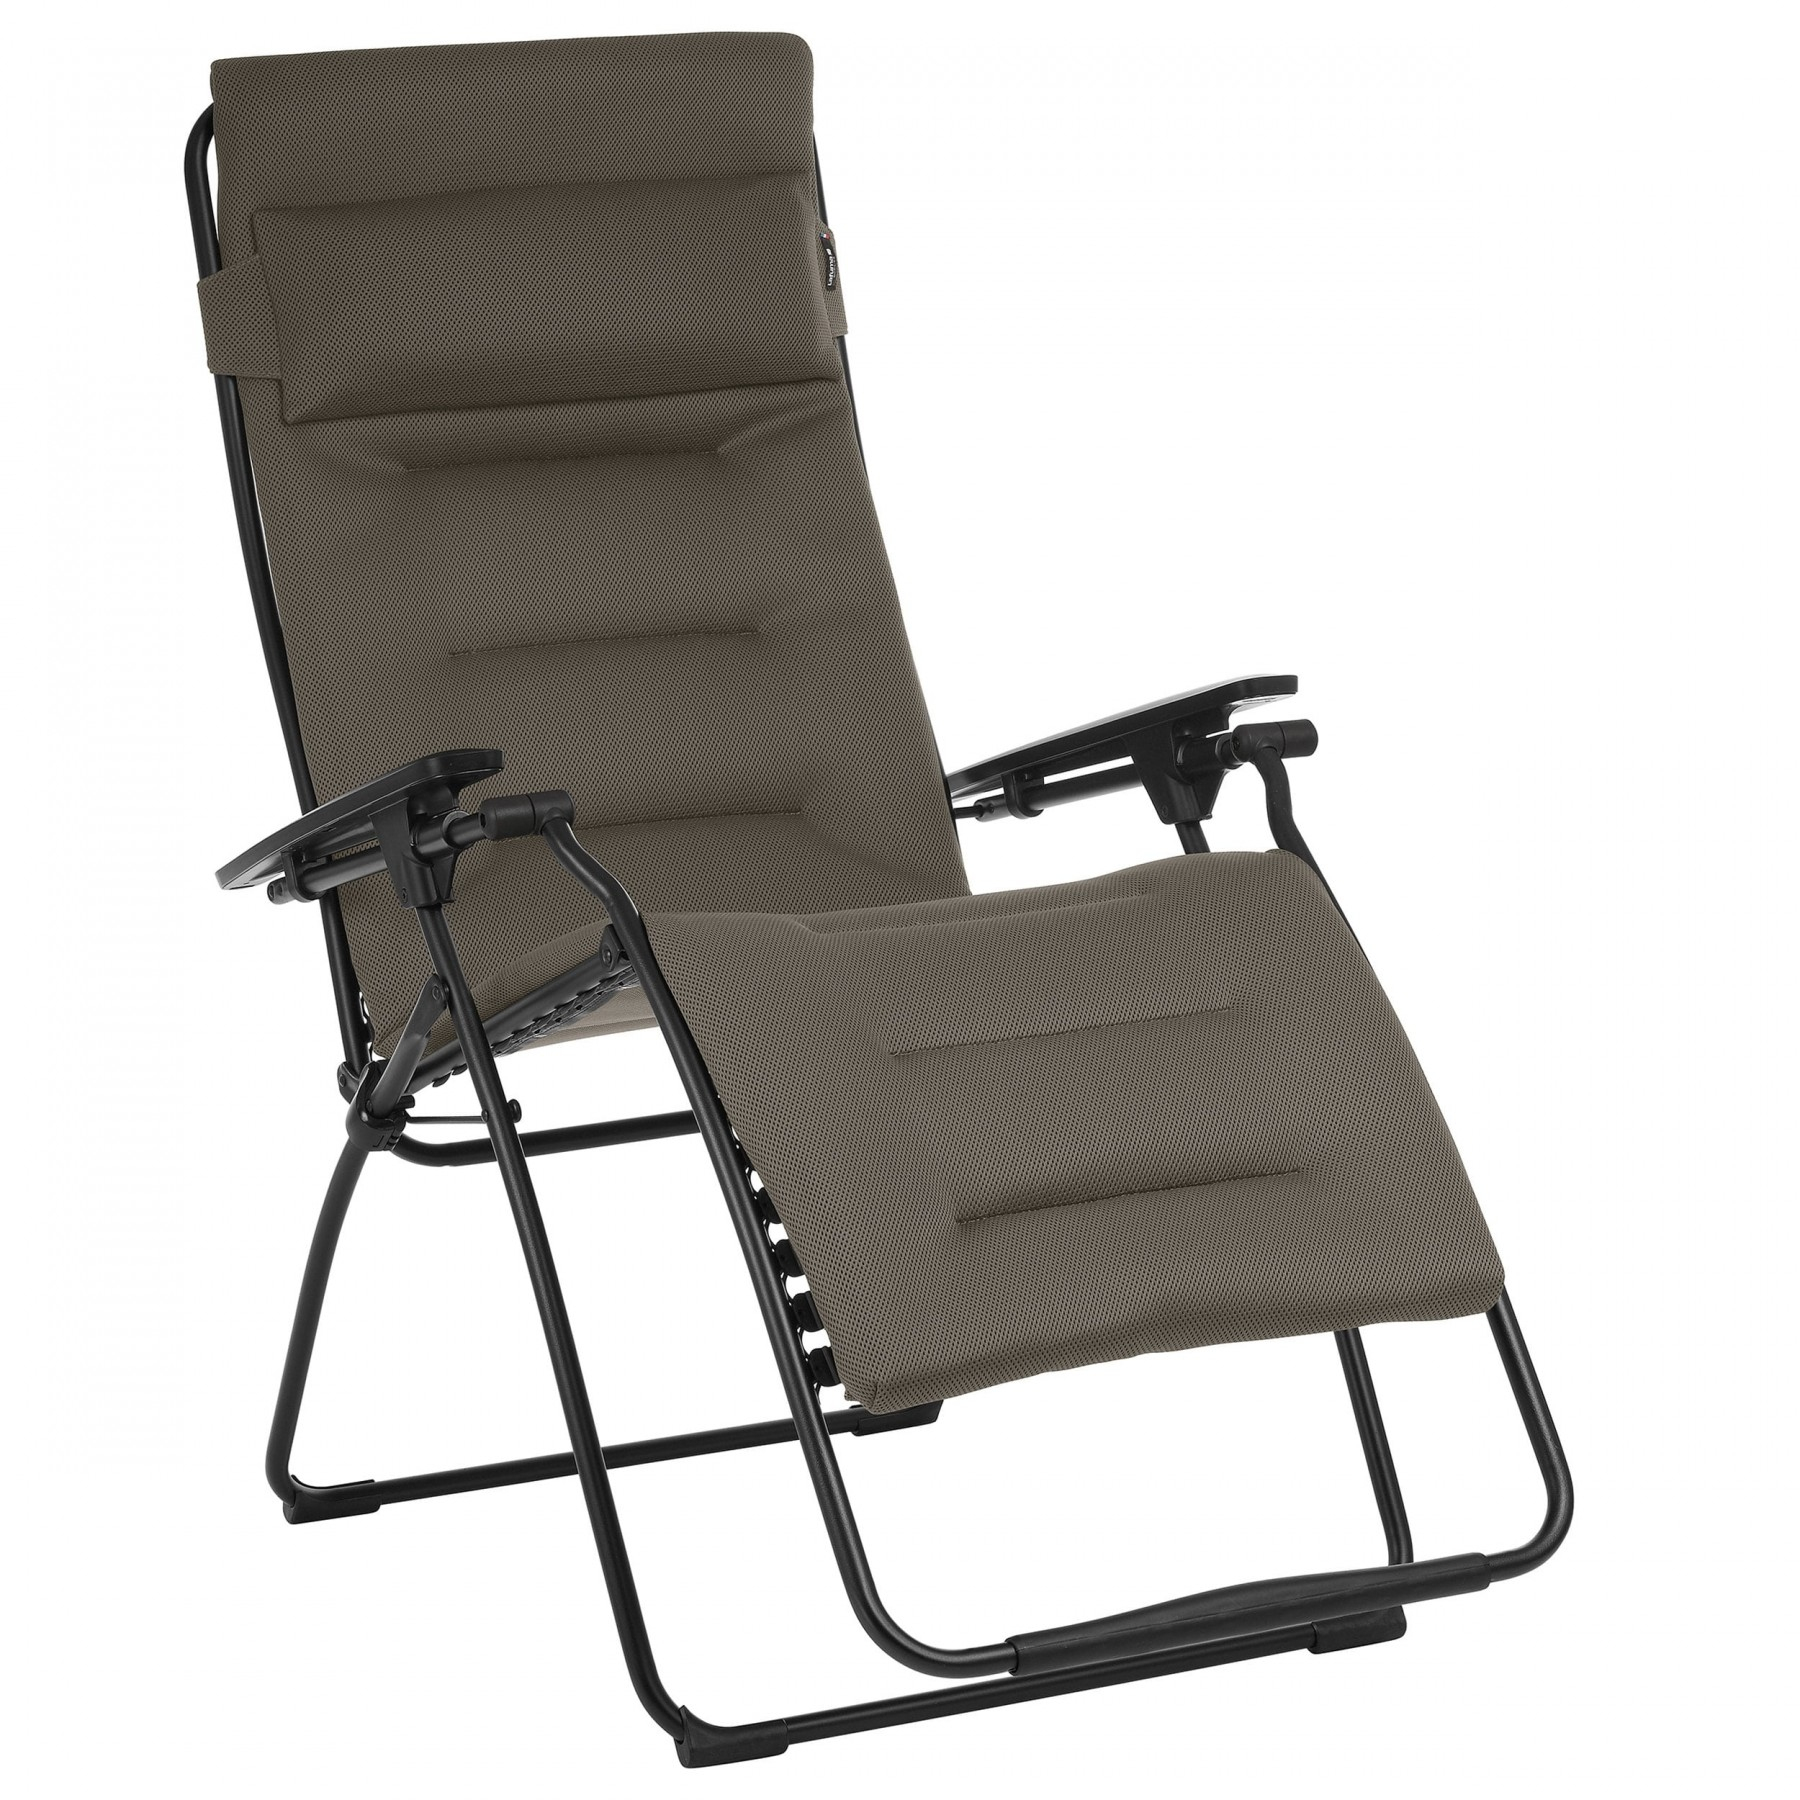 Relaxation Chair Xl Futura Air Comfort Taupe | Lafuma Mobilier concernant Relax Lafuma